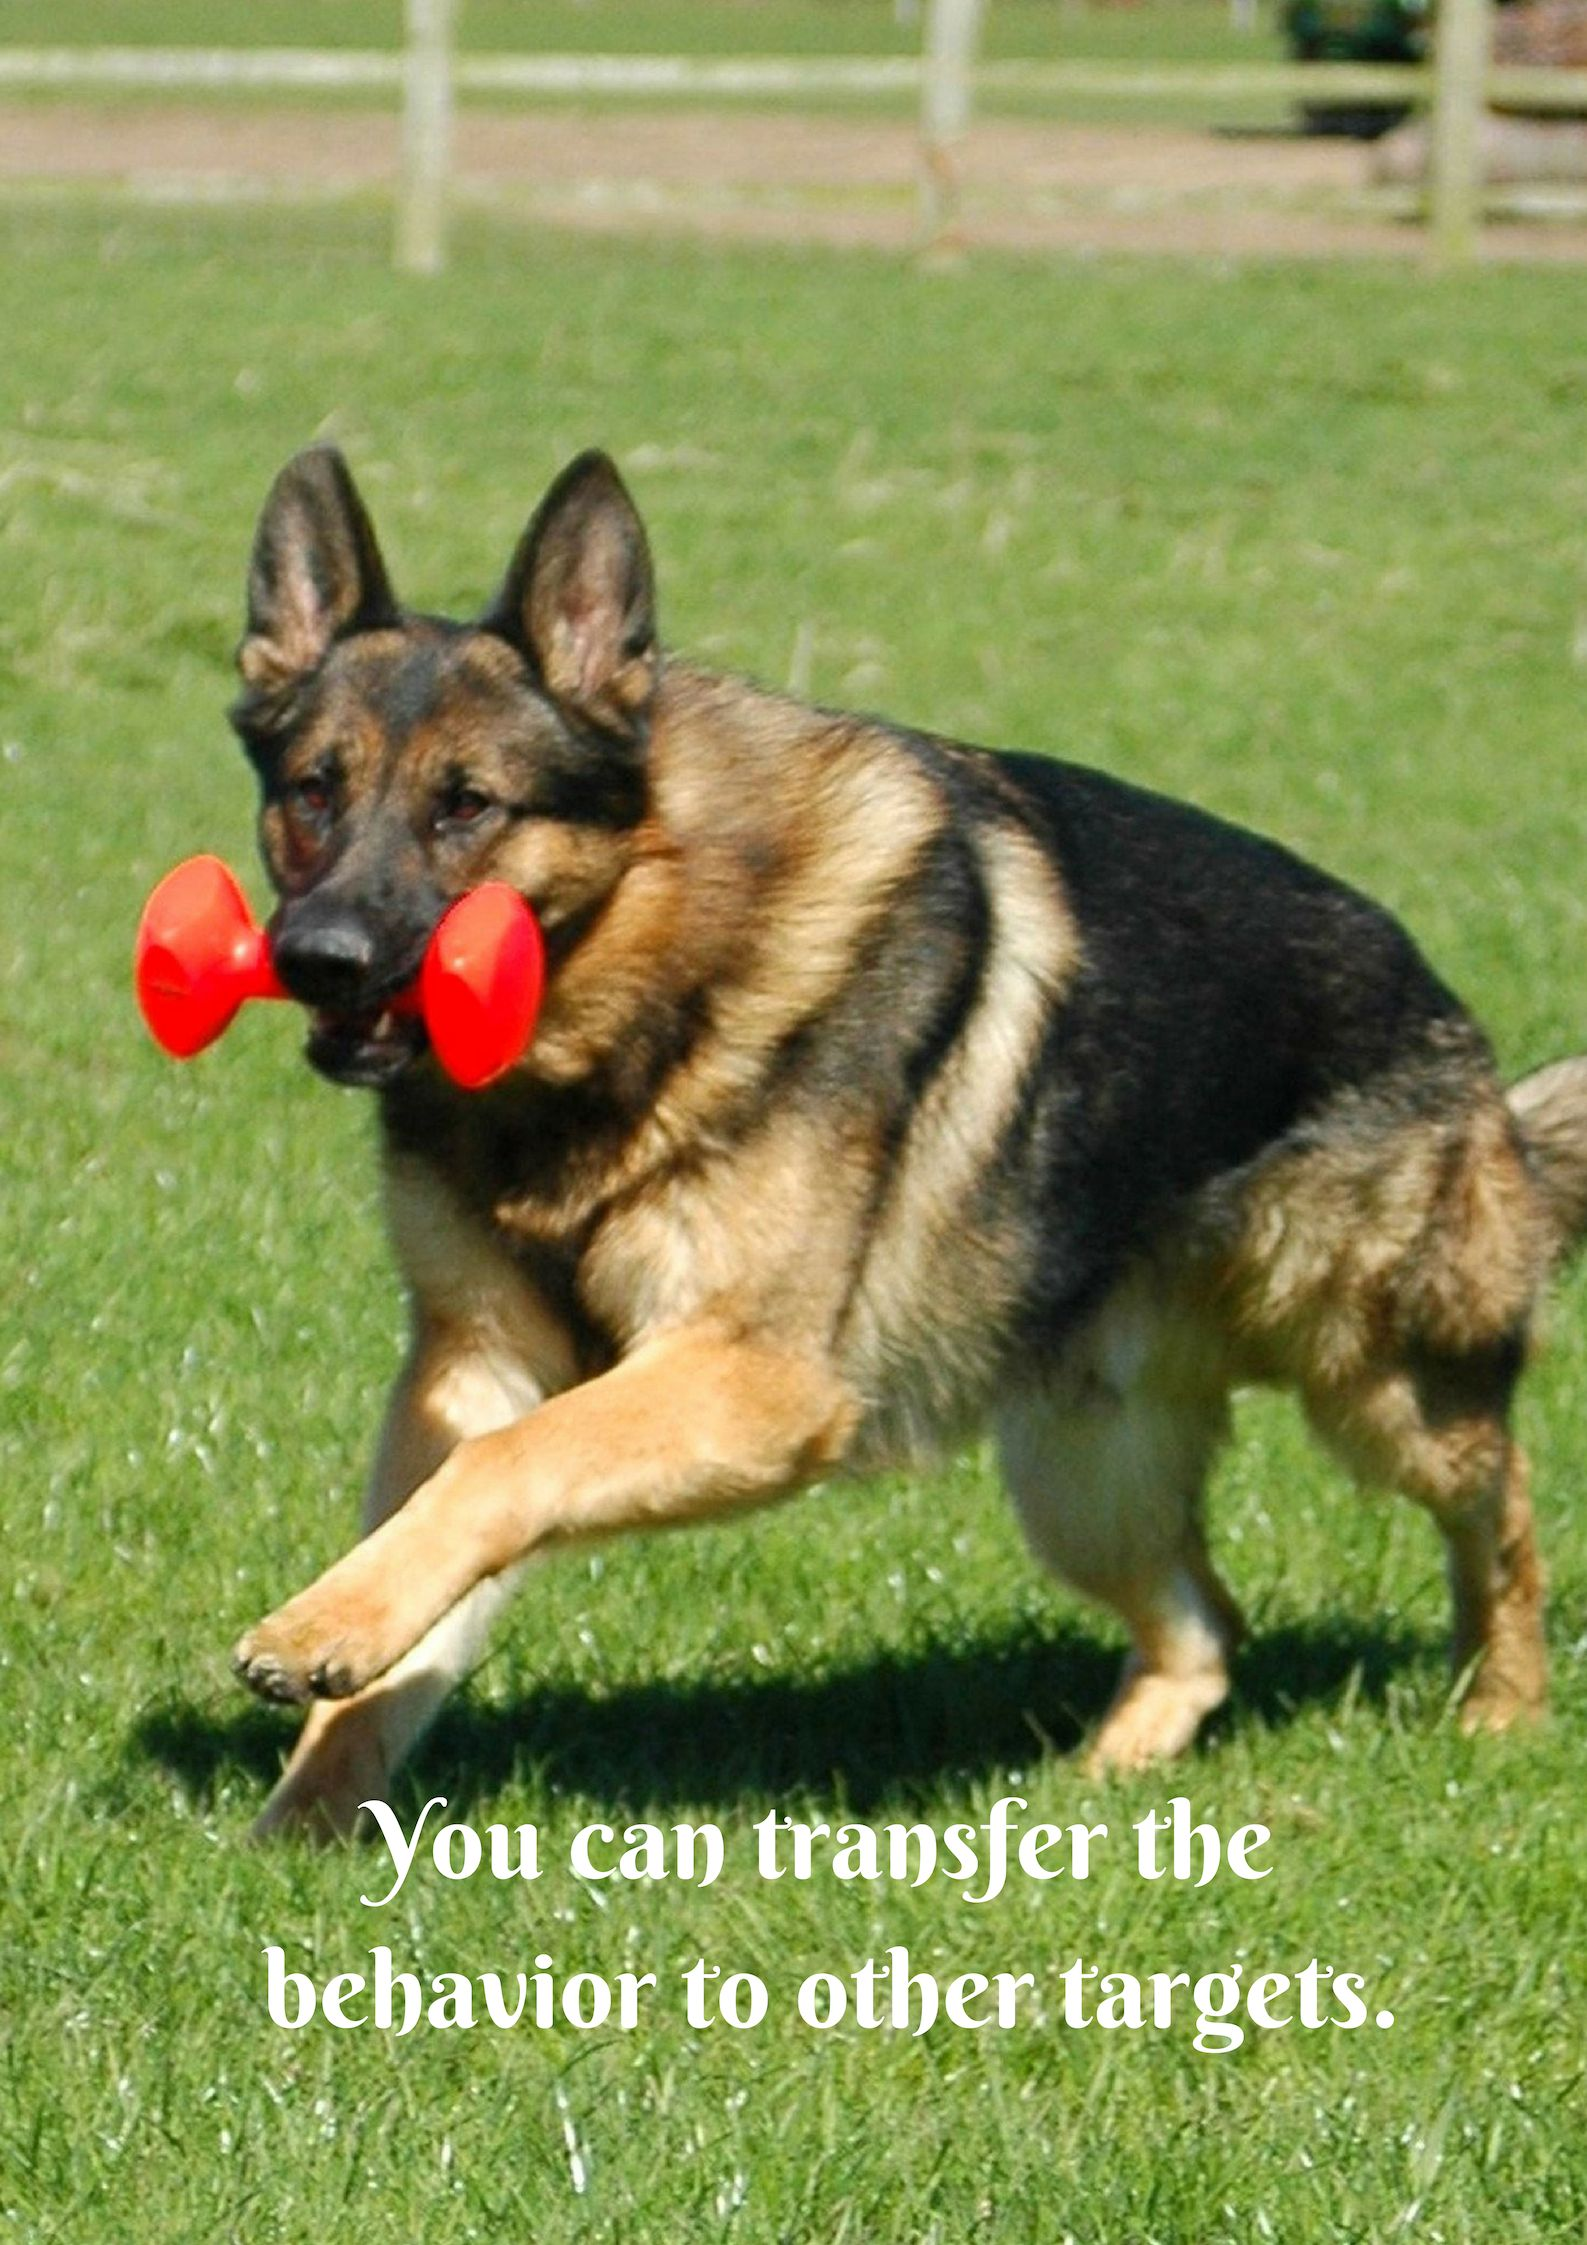 Use The Target To Teach The Dog To Walk Beside You On A Loose